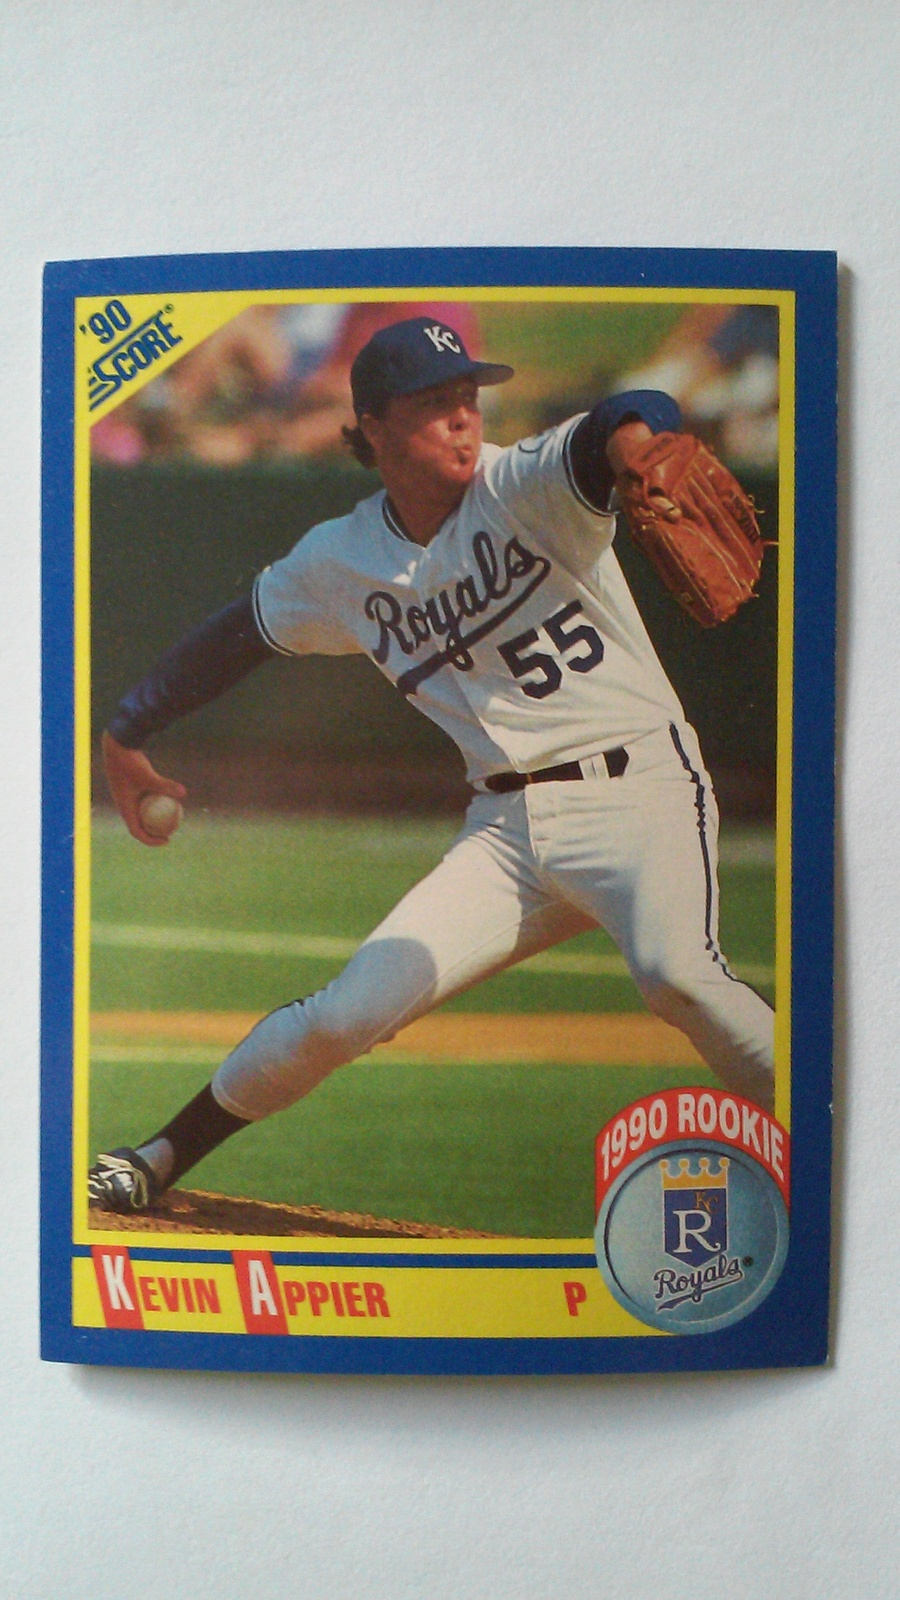 Kevin Appier 1990 Score Rookie Card #625 Kansas City Royals Free Shipping